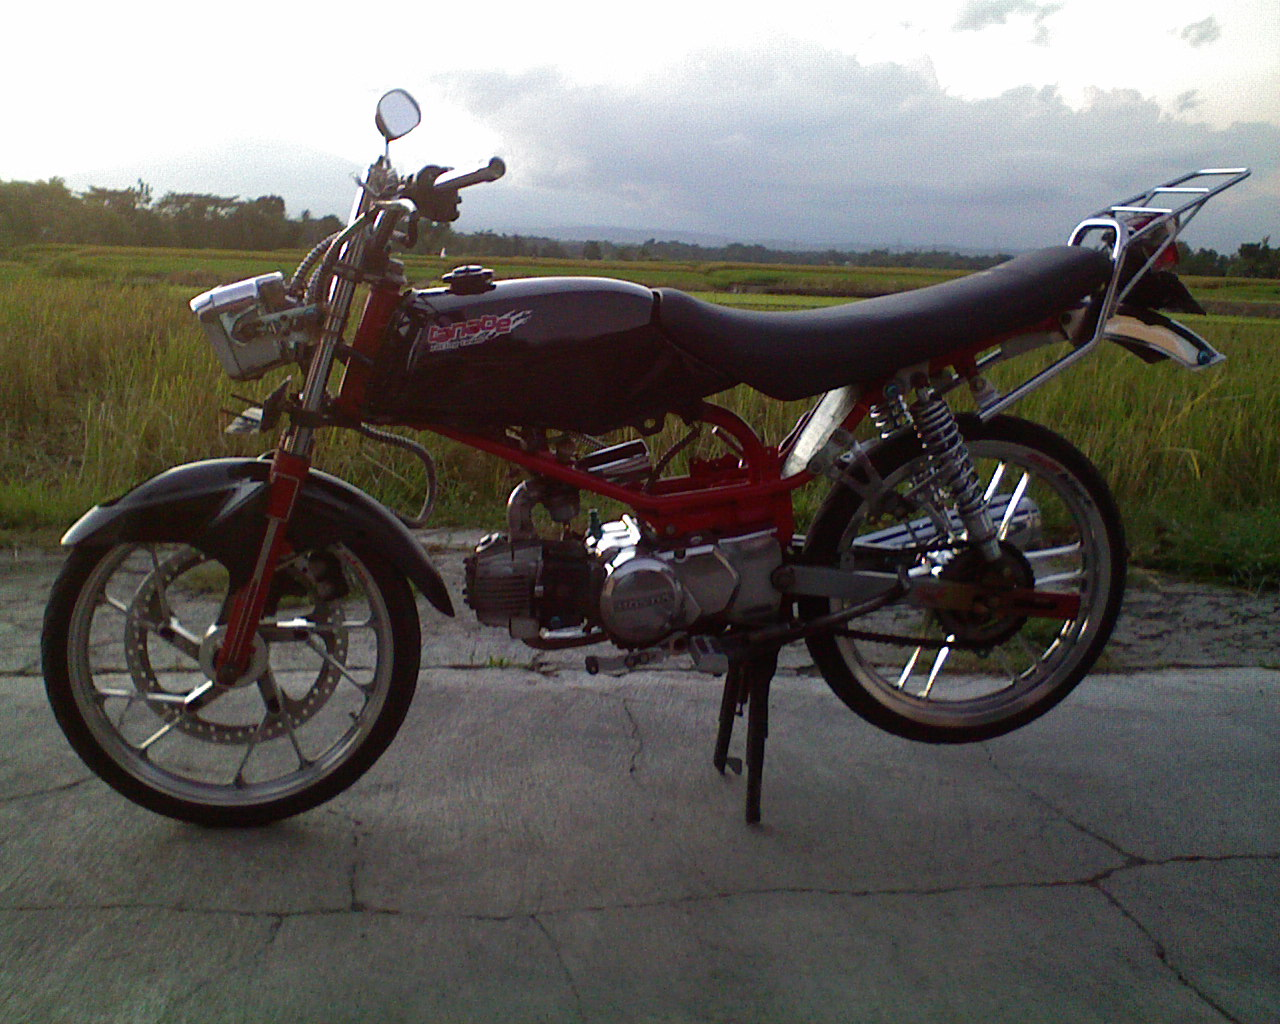 Motor Honda Vario Modifikasi Motor Modifikasi Motor Mio Modifikasi